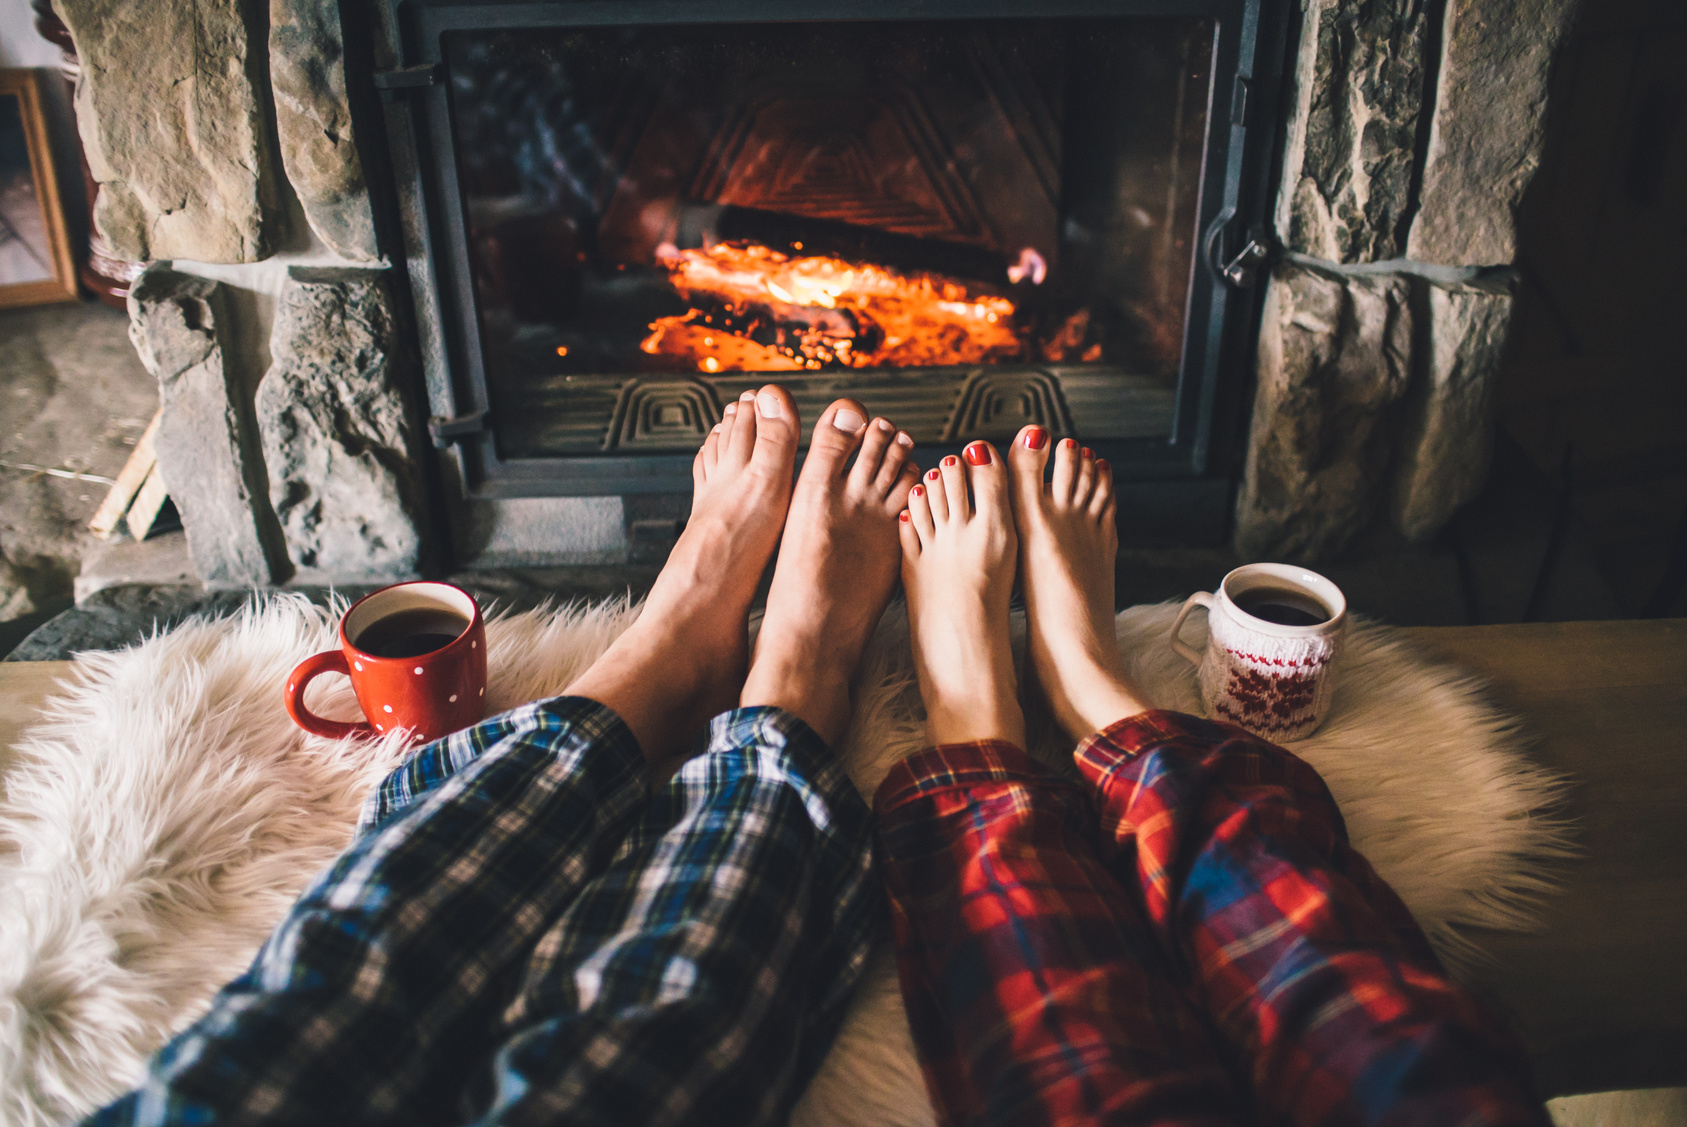 Bare couple feet by the cozy fireplace. Man and Woman relaxes by warm fire with a cup of hot drink and warming up her feet. Close up on feet. Winter and Christmas holidays concept.